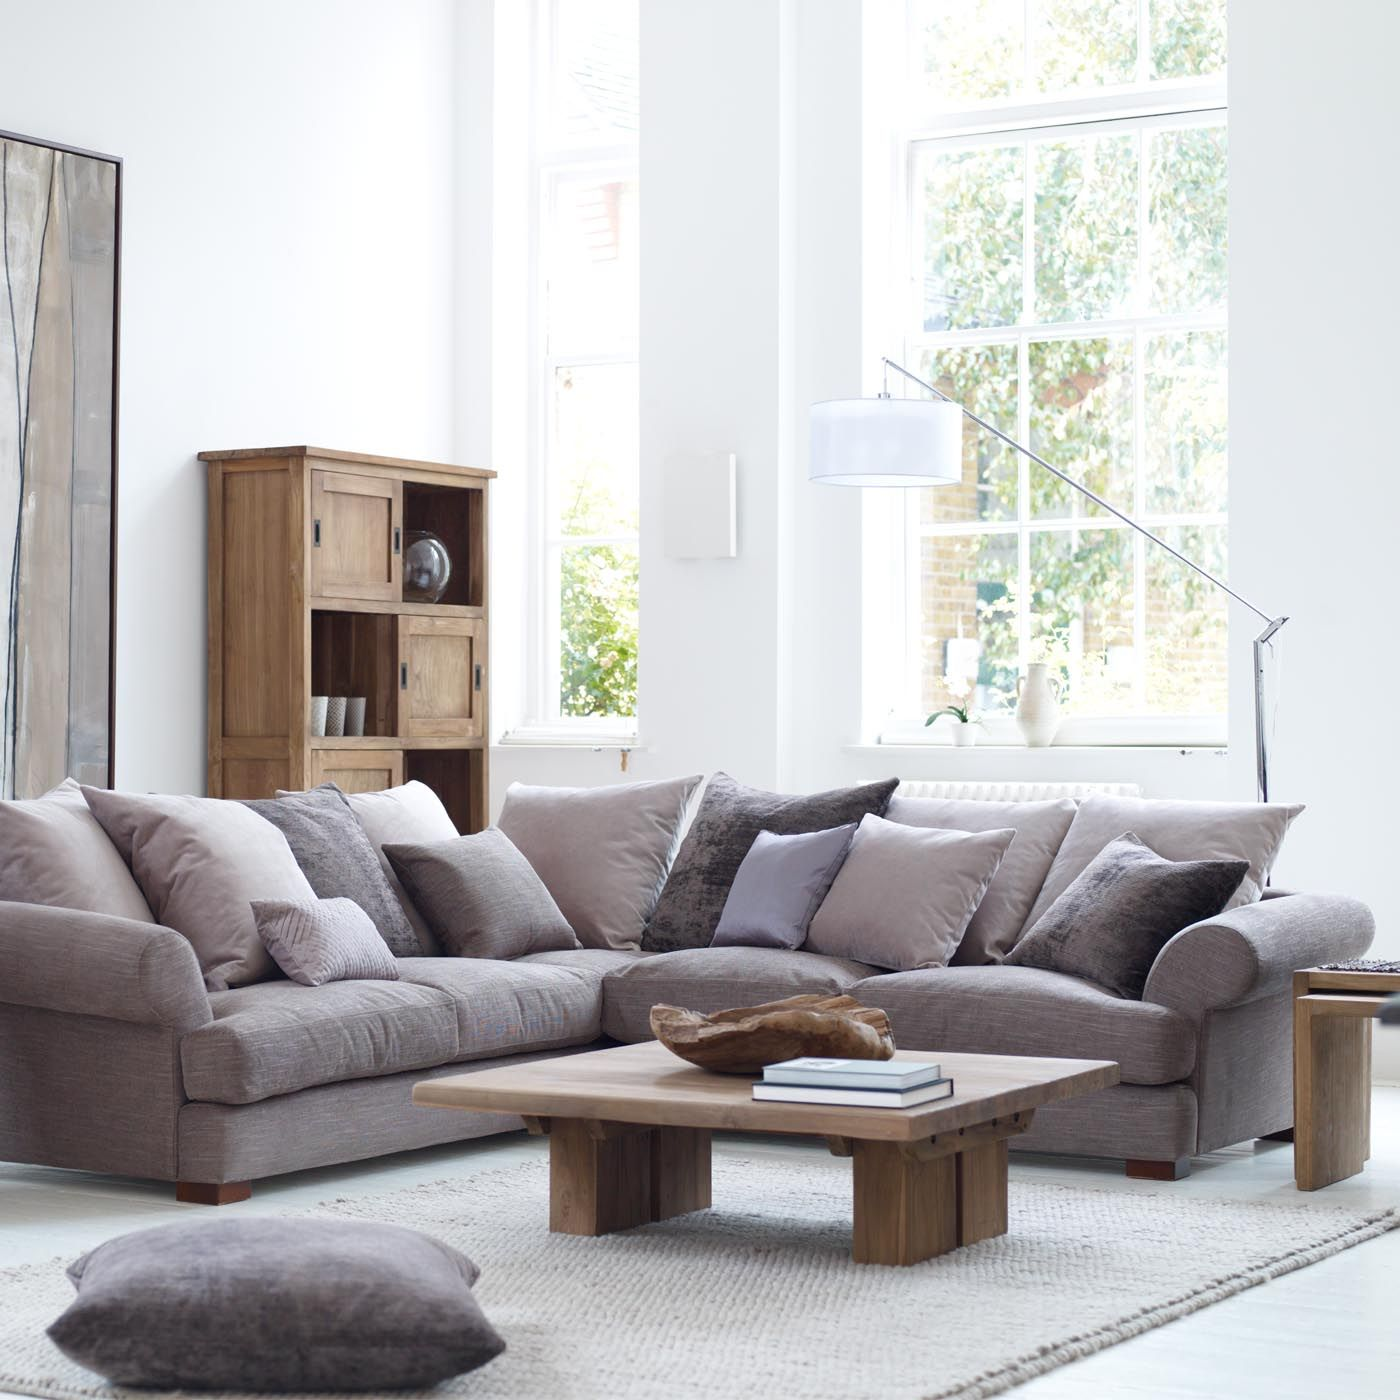 Grey Sofa In Lounge Sofas Like This But In Linwood Flint With Block Square Arms And